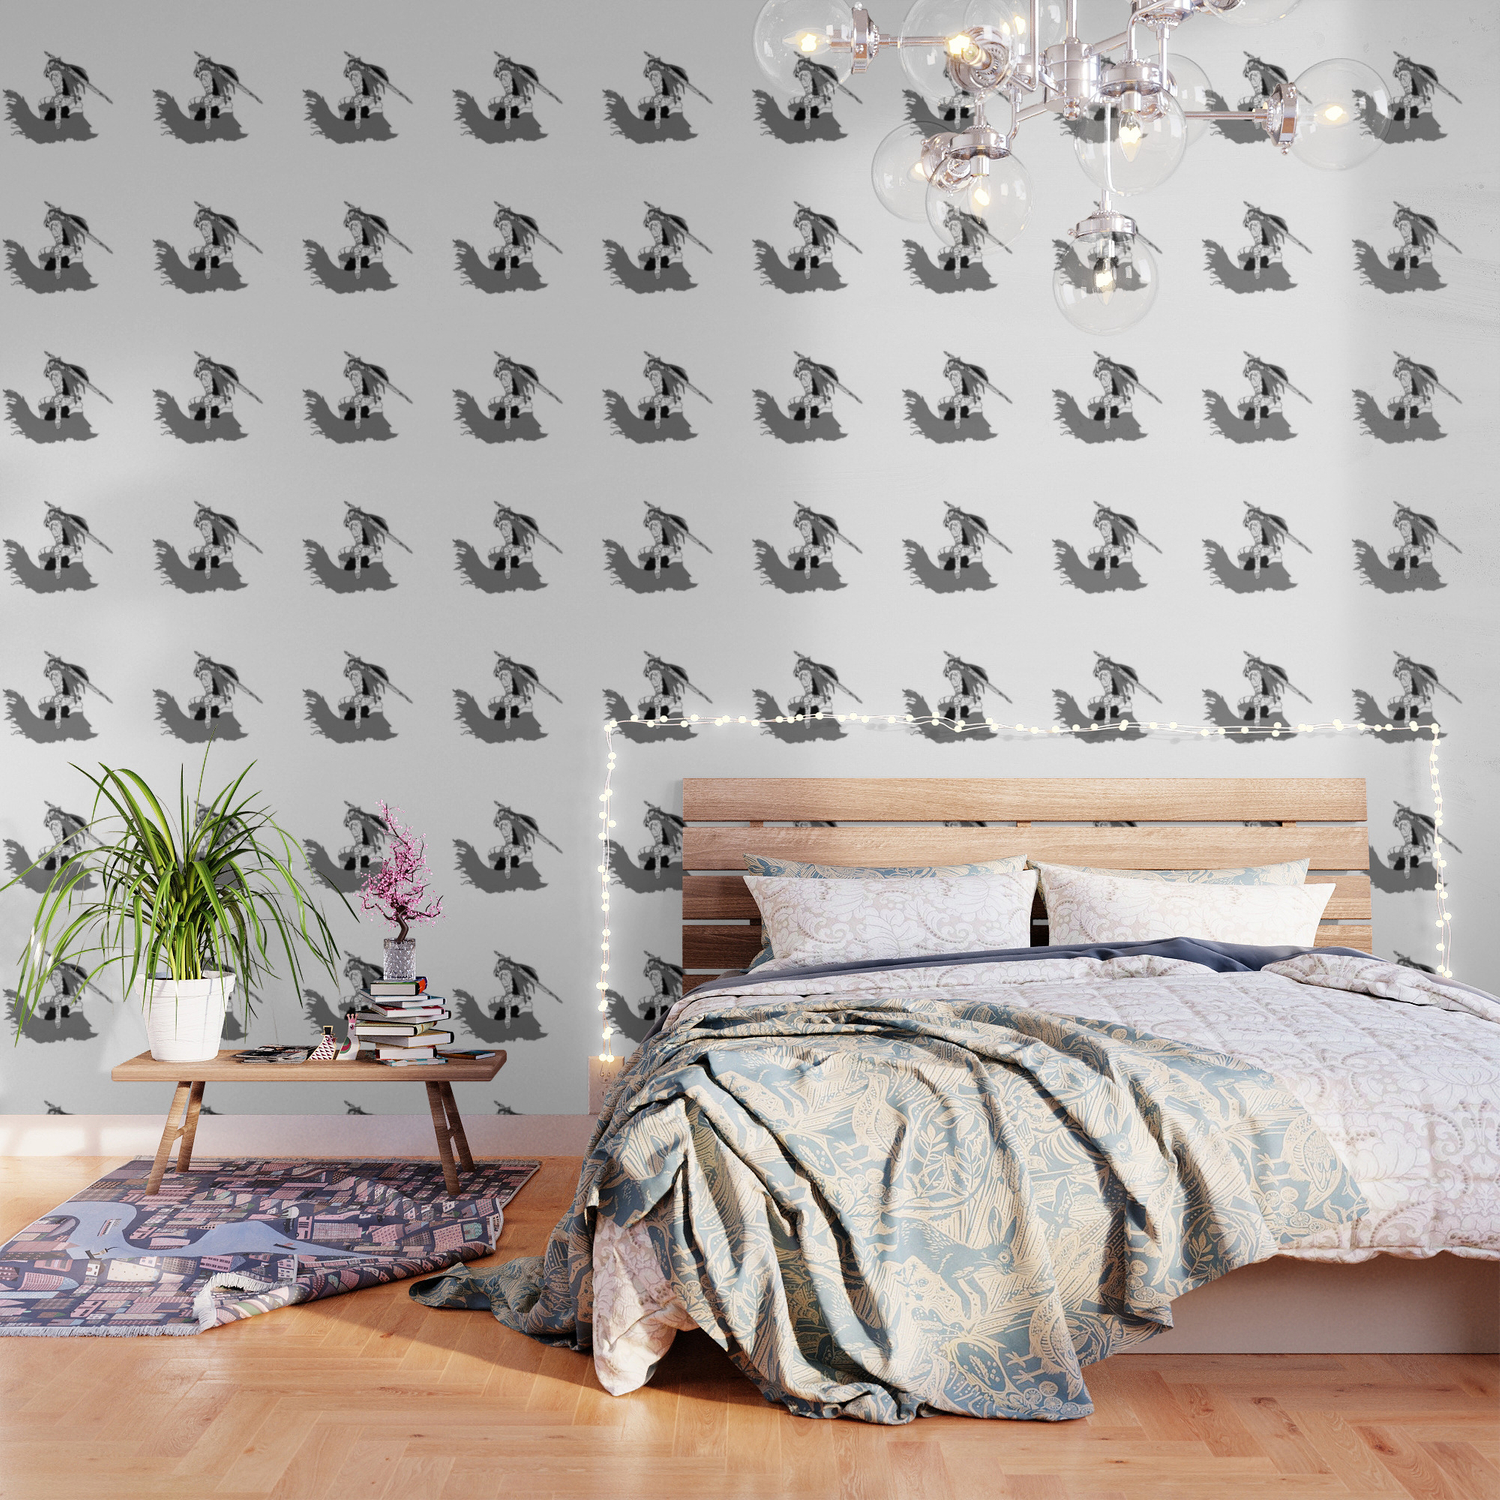 Artorias Of The Abyss Wallpaper By Cyst Society6